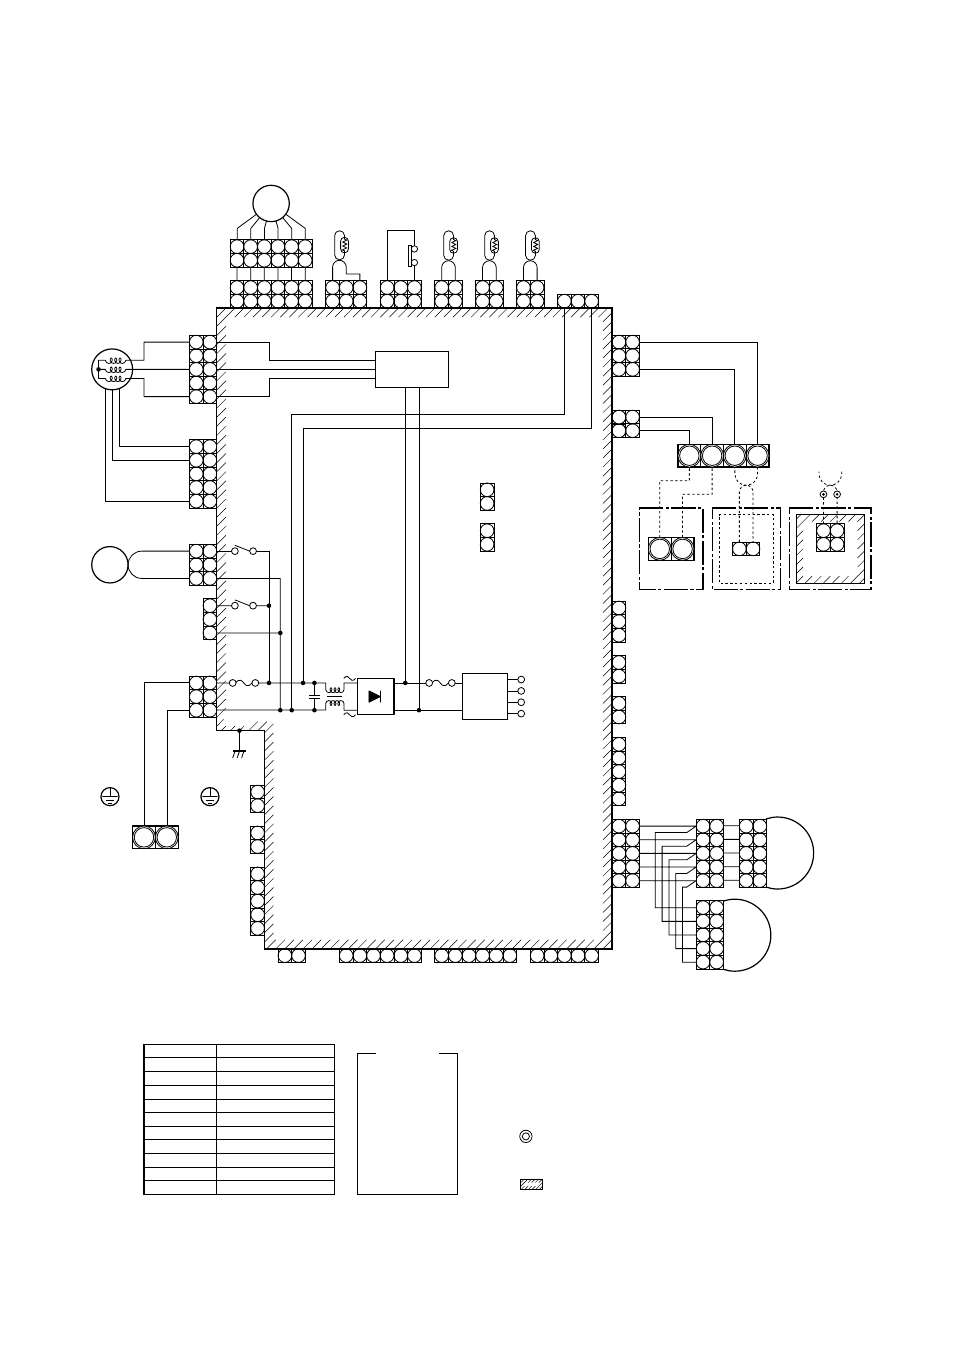 toshiba mmu ap0121mh page9 wiring diagram, control p c board for indoor unit mcc 1402 toshiba motor wiring diagram at mifinder.co